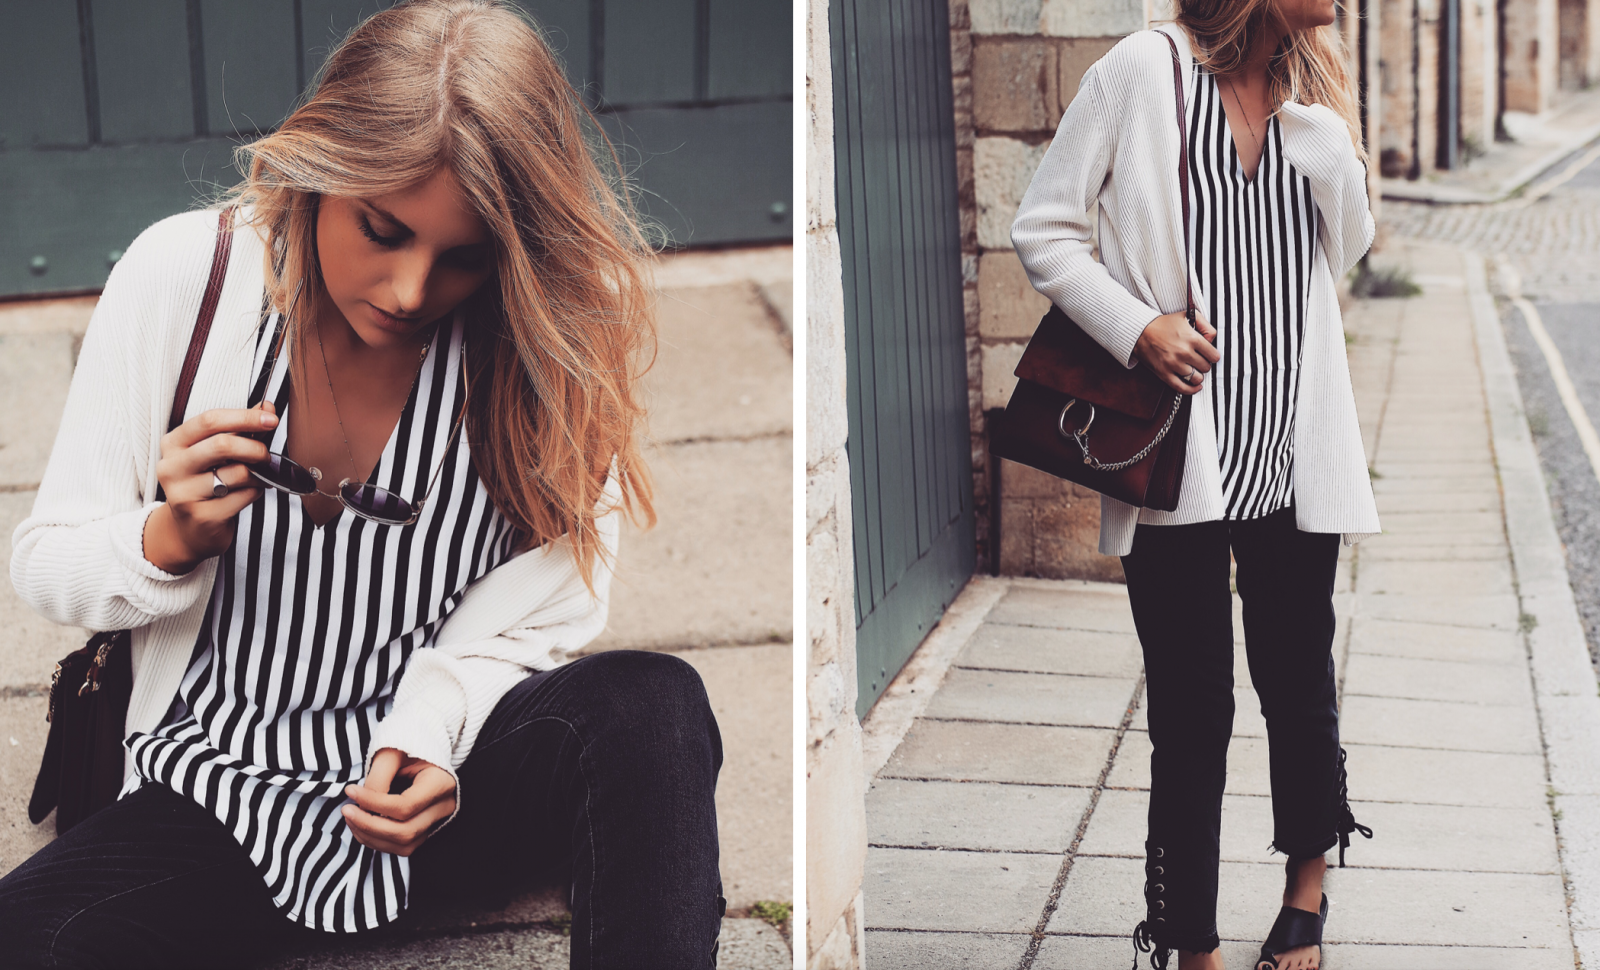 Monochrome Summer Outfit - Other Stories